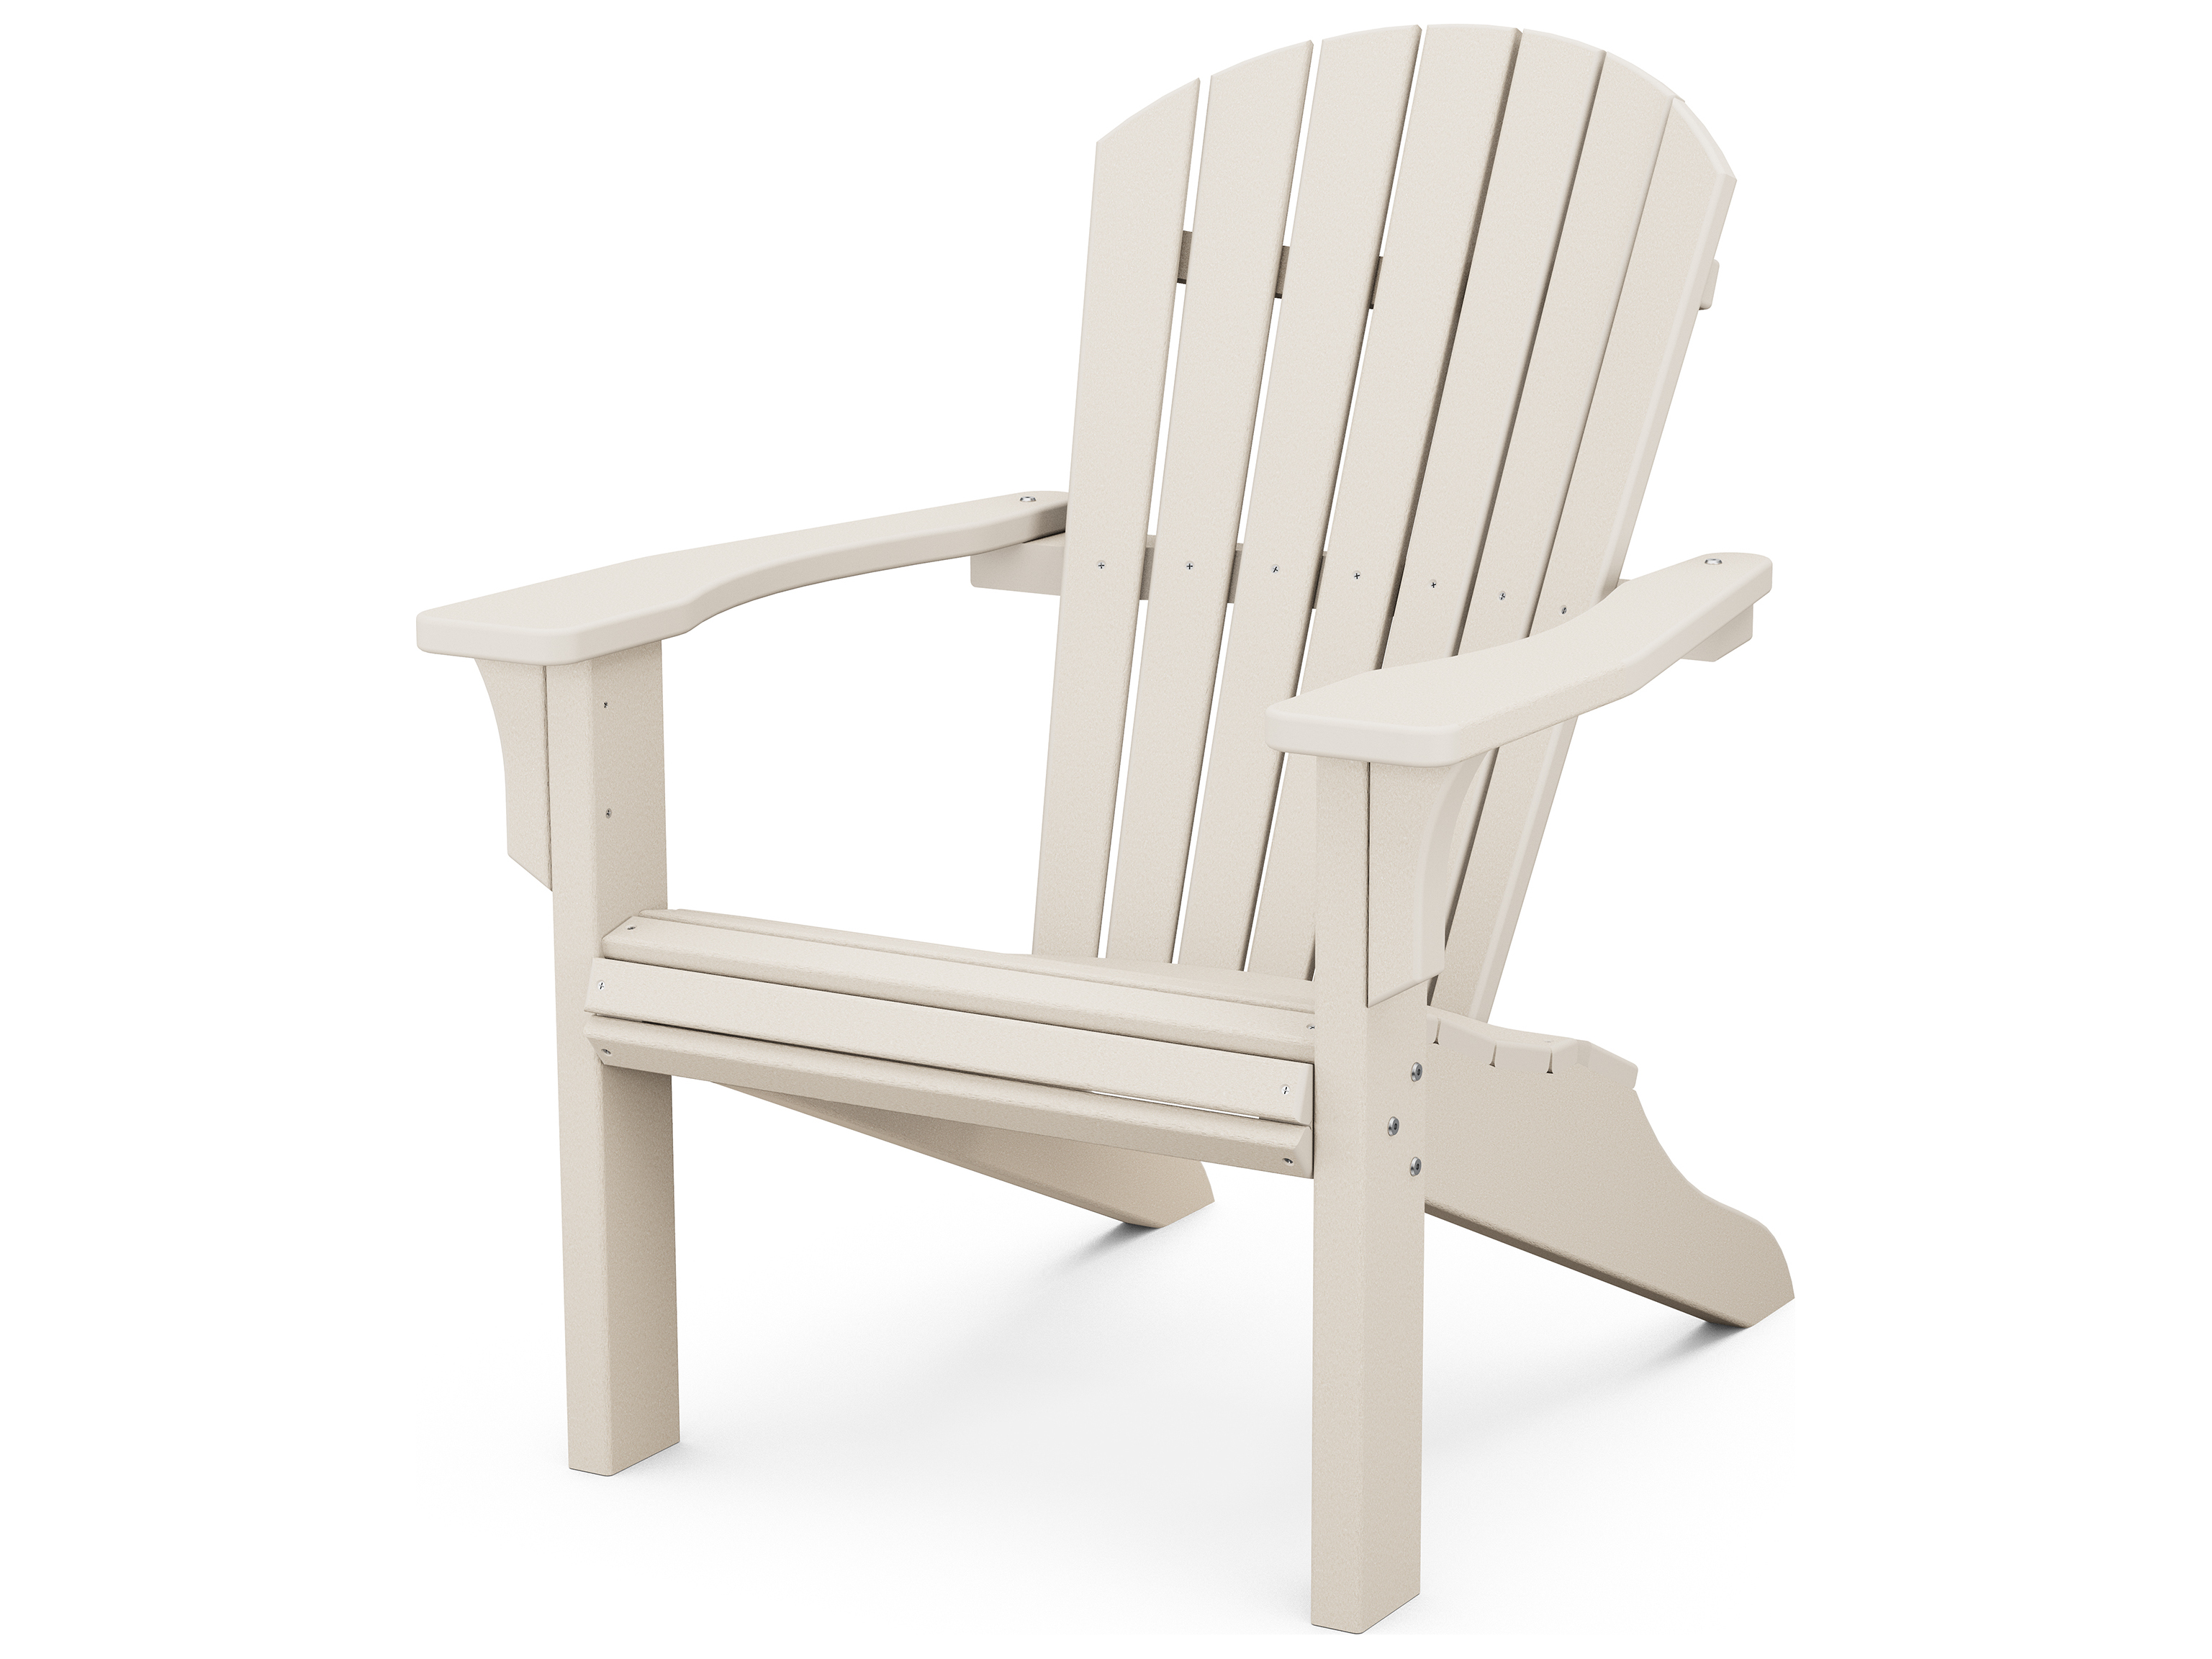 POLYWOOD Seashell Recycled Plastic Adirondack Chair